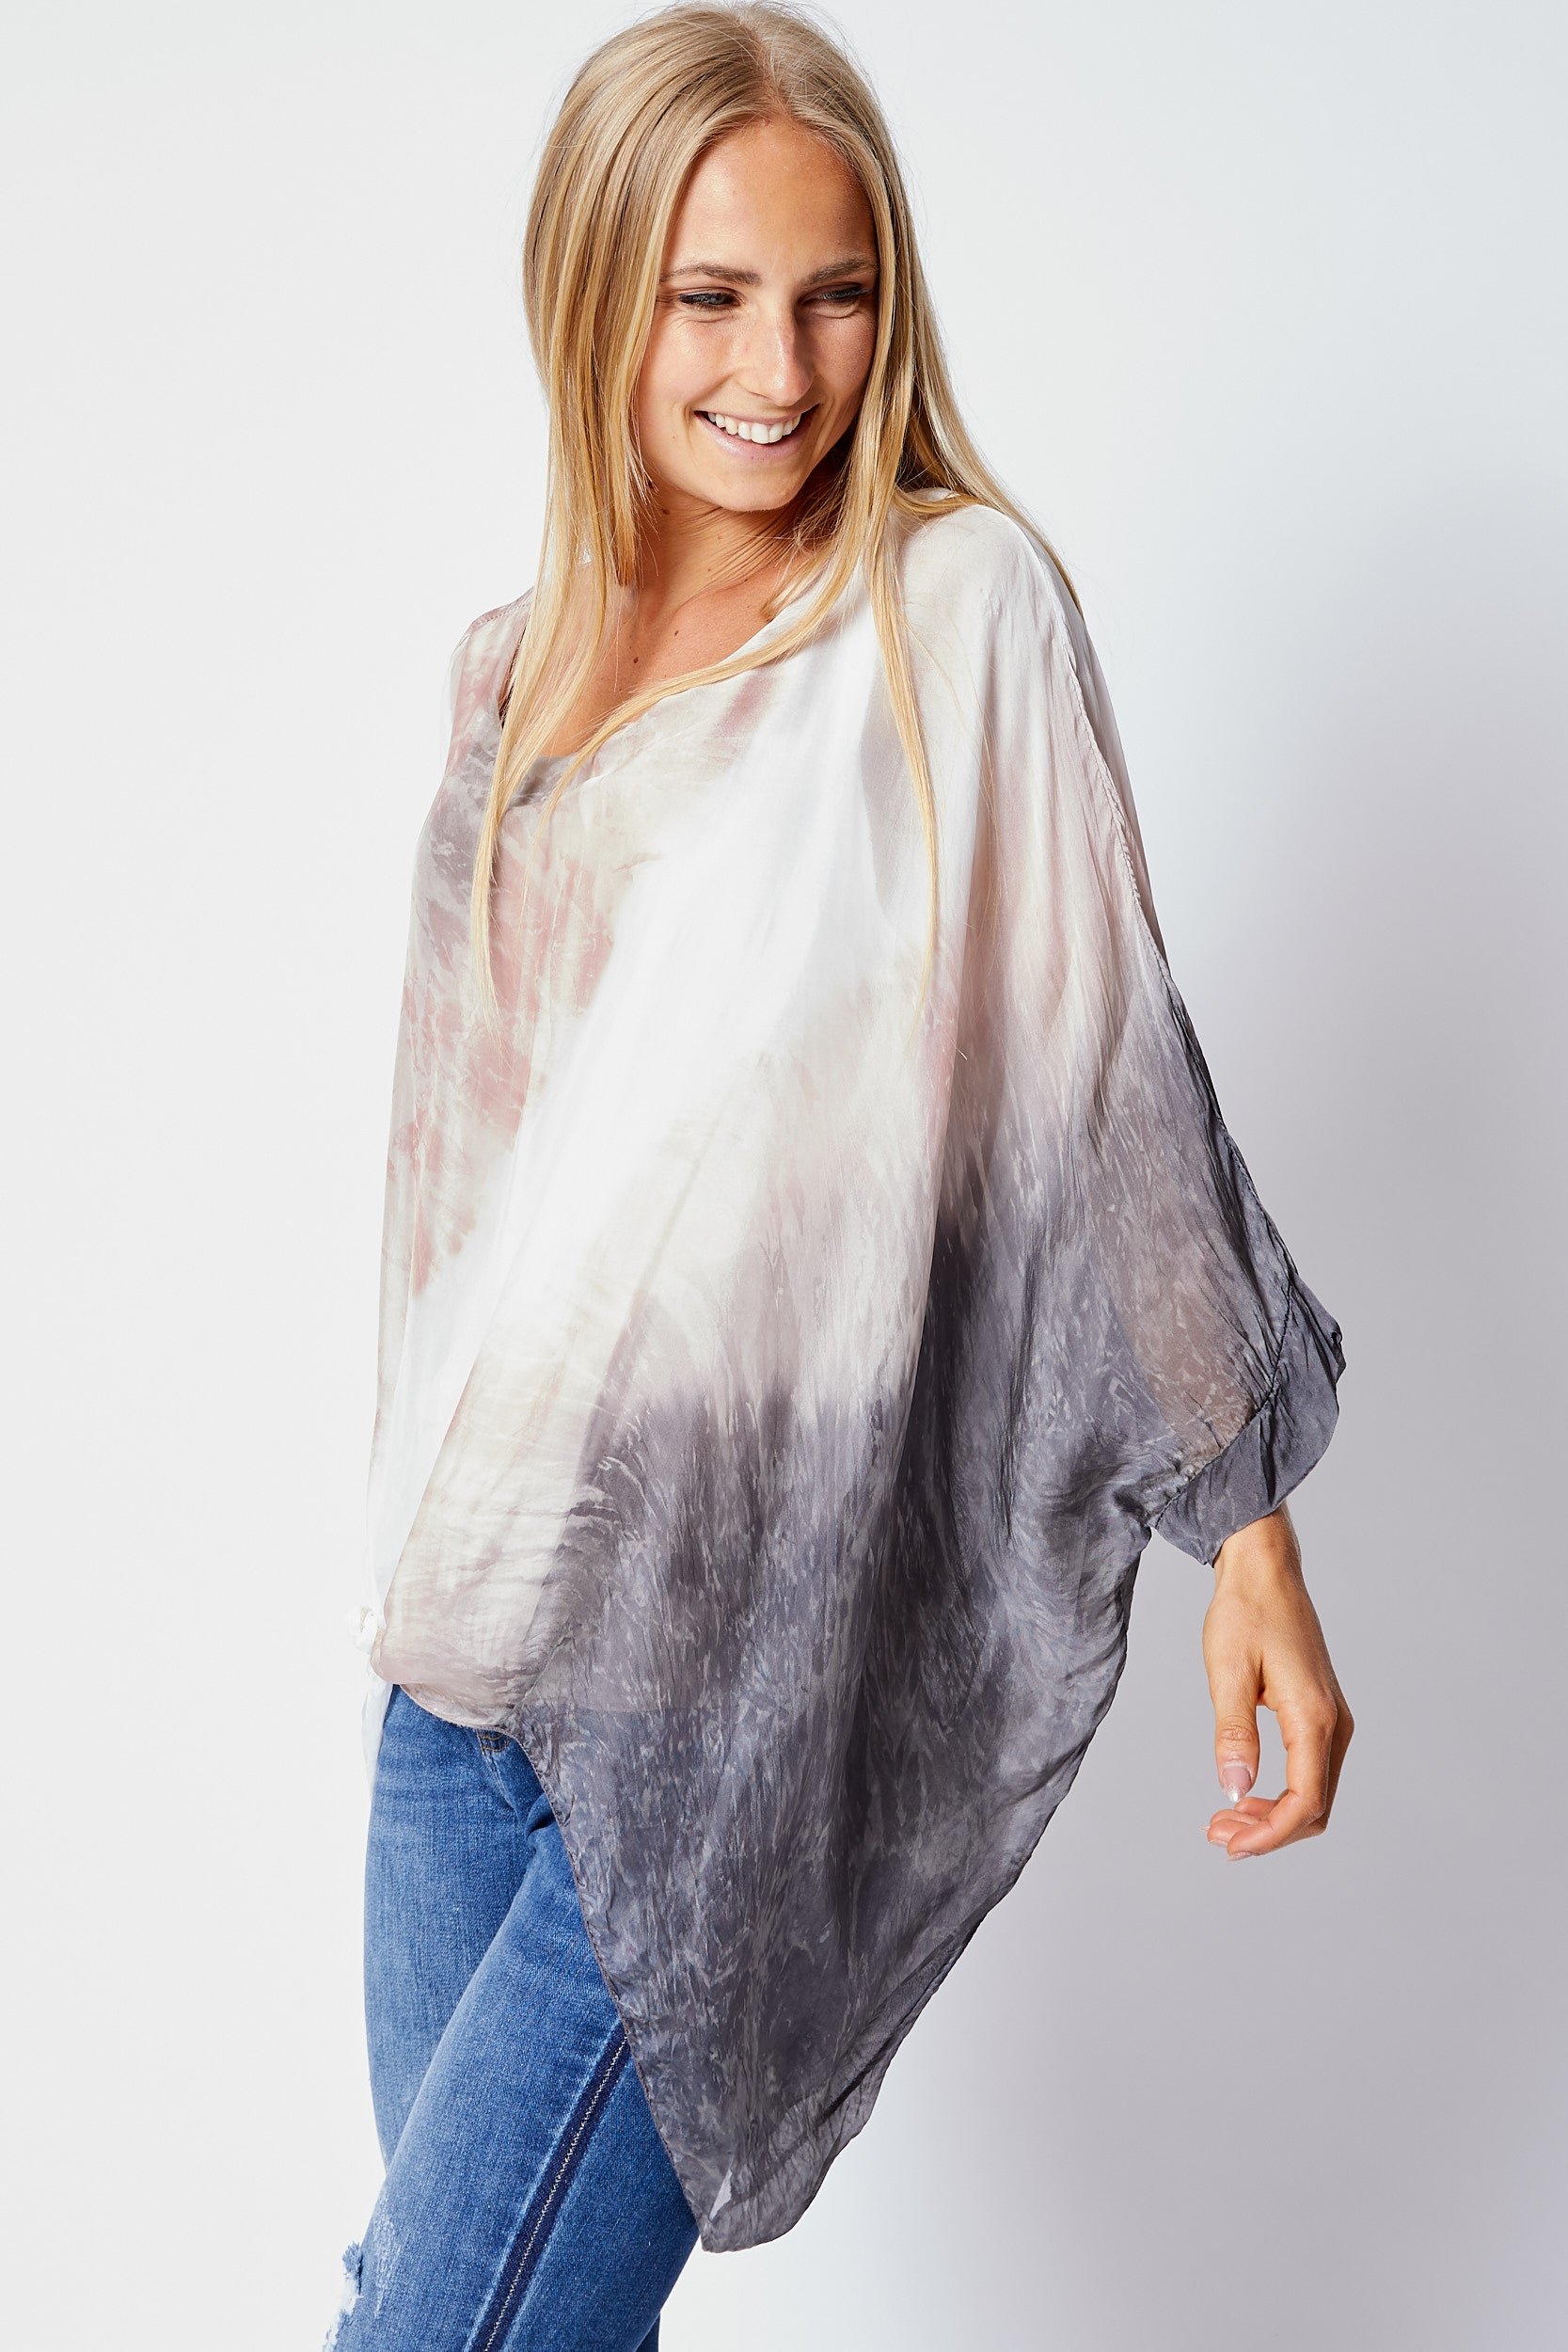 Italian Silk Tie-Dye Top - Jacqueline B Clothing